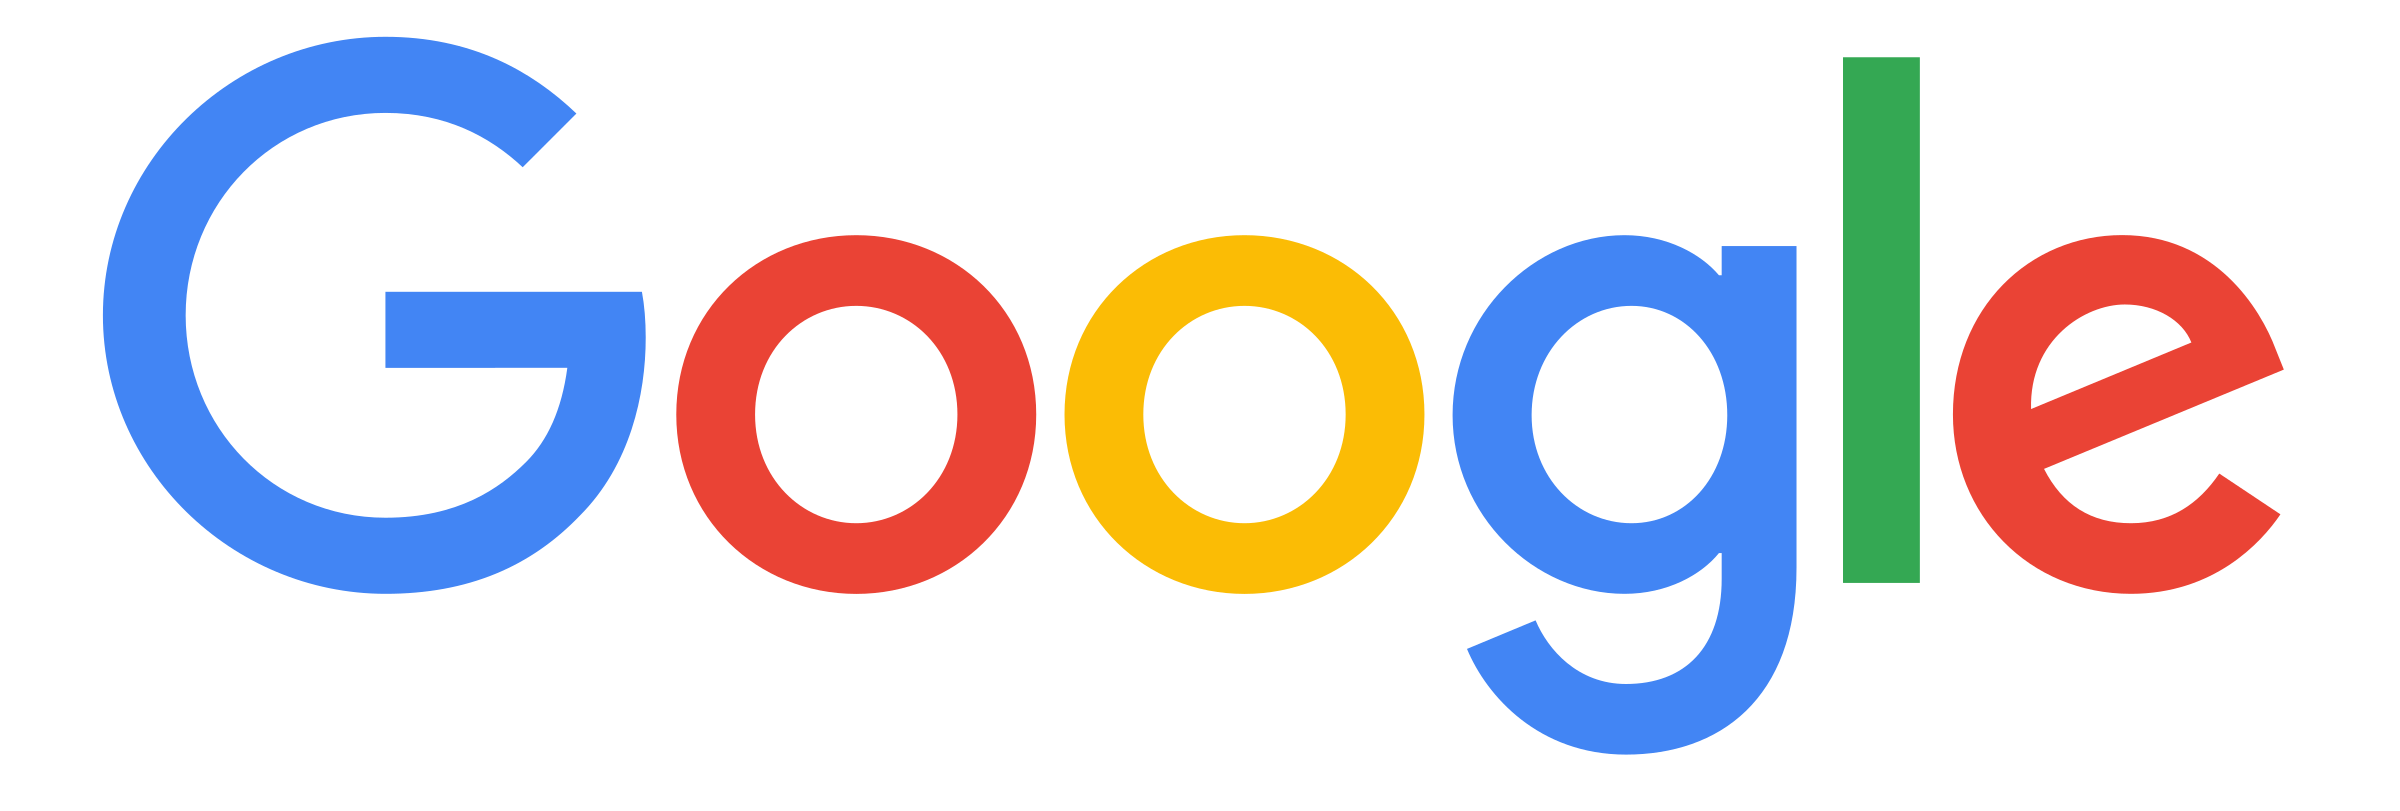 Google Logo PNG Transparent & SVG Vector